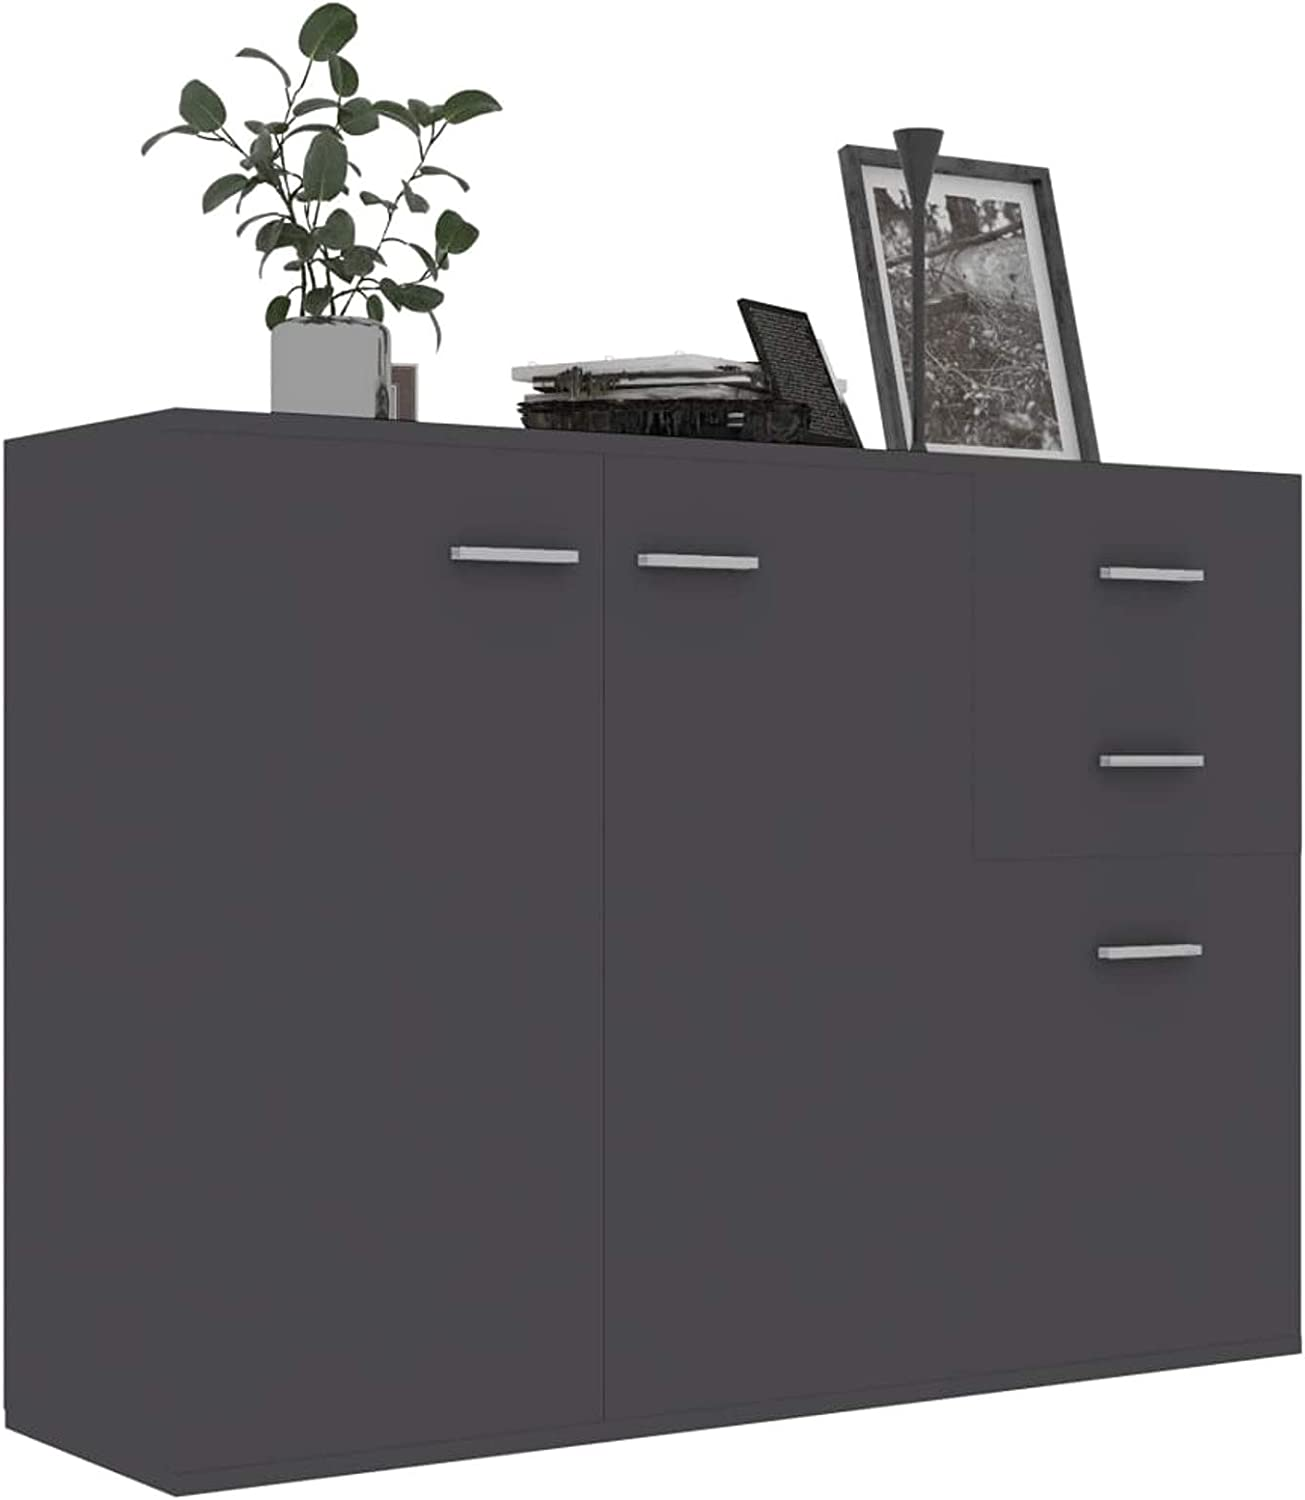 Festnight Modern Sideboard with 3 Storage Popular standard 2 Kansas City Mall and Door Drawers Cab